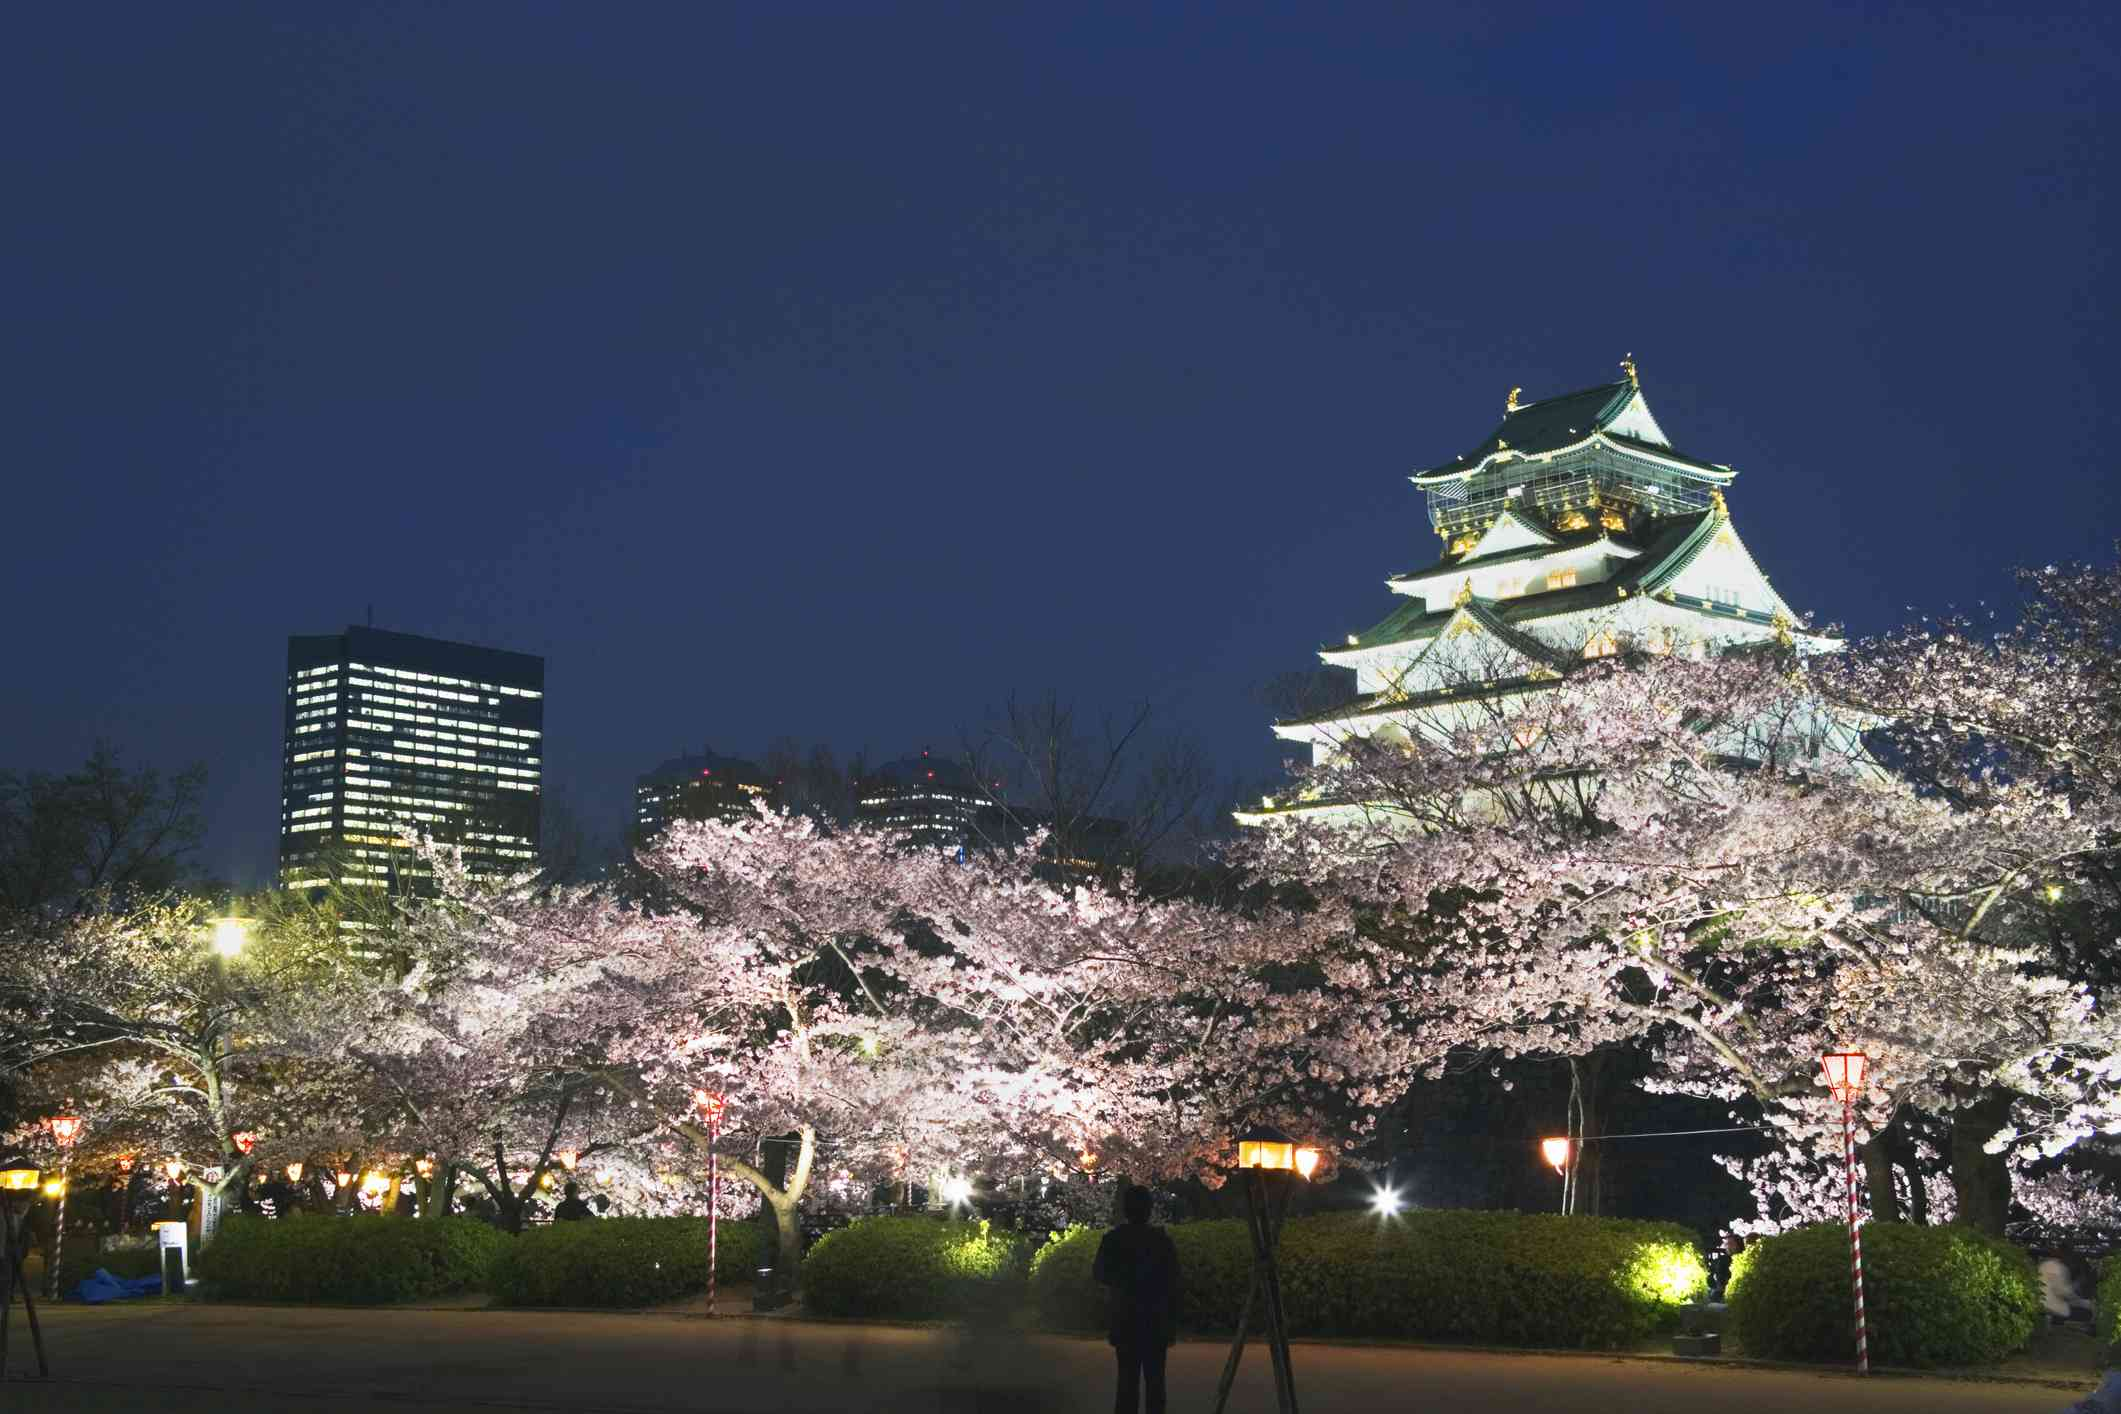 Pink cherry blossom trees in bloom around the Osaka Castle at night under a clear sky